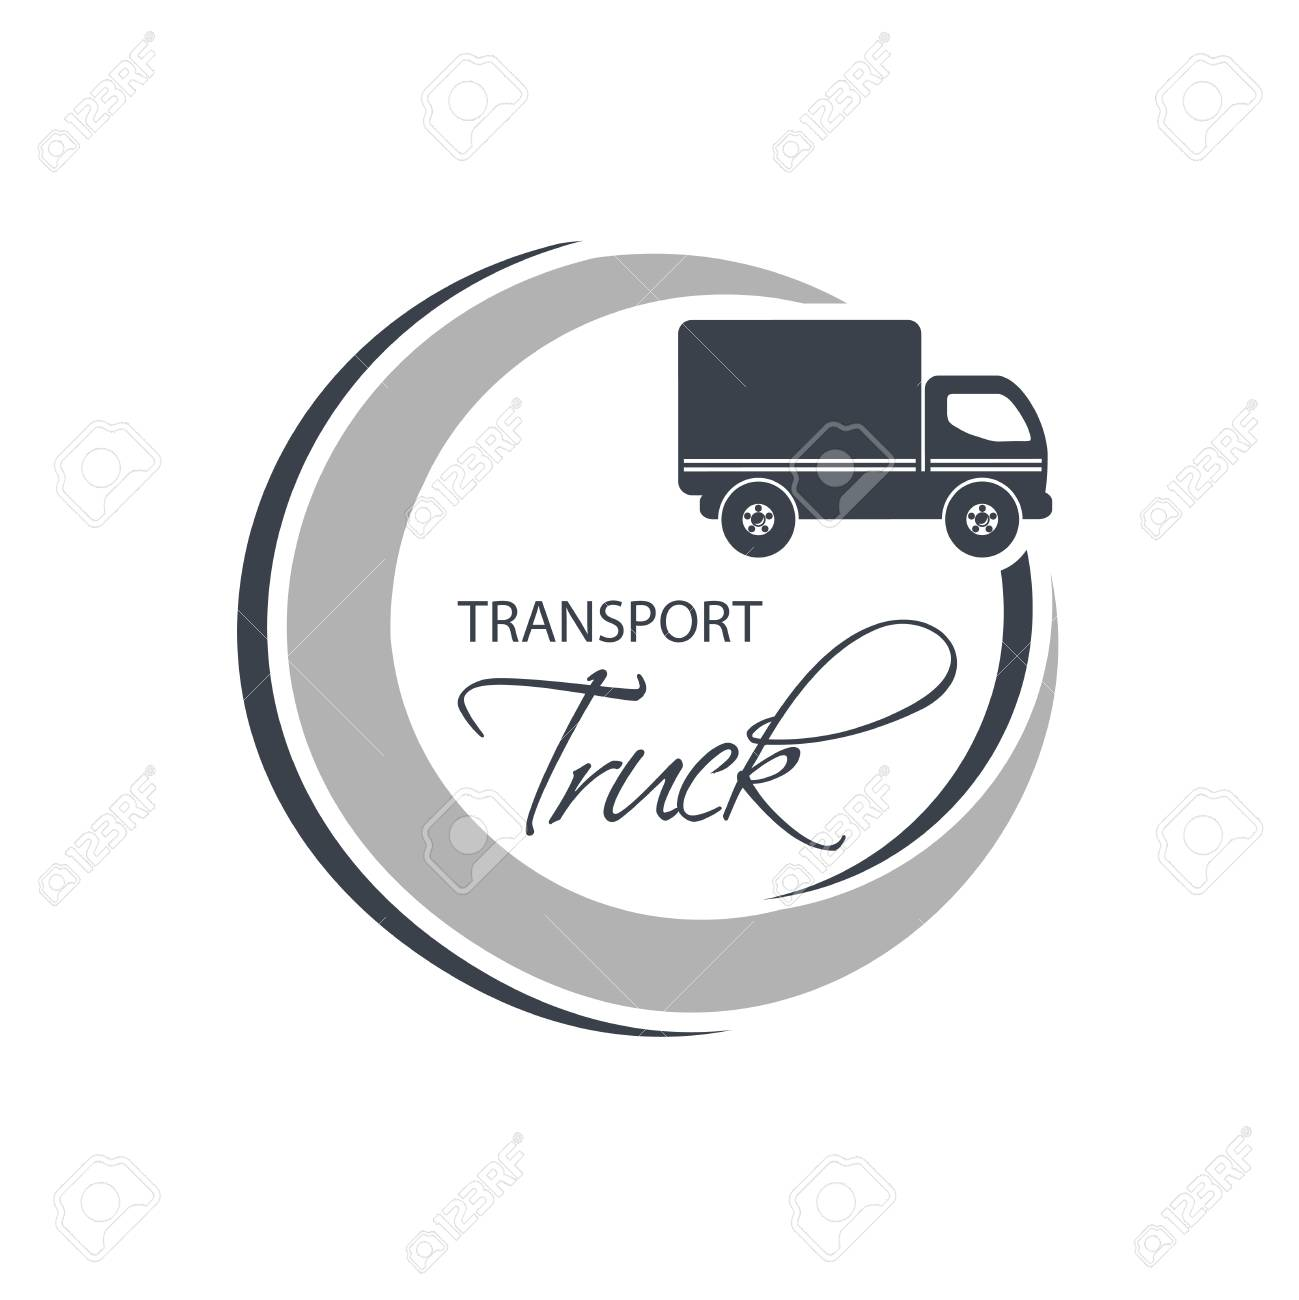 Vector Circular Symbol Of Transport With Silhouette Of Truck